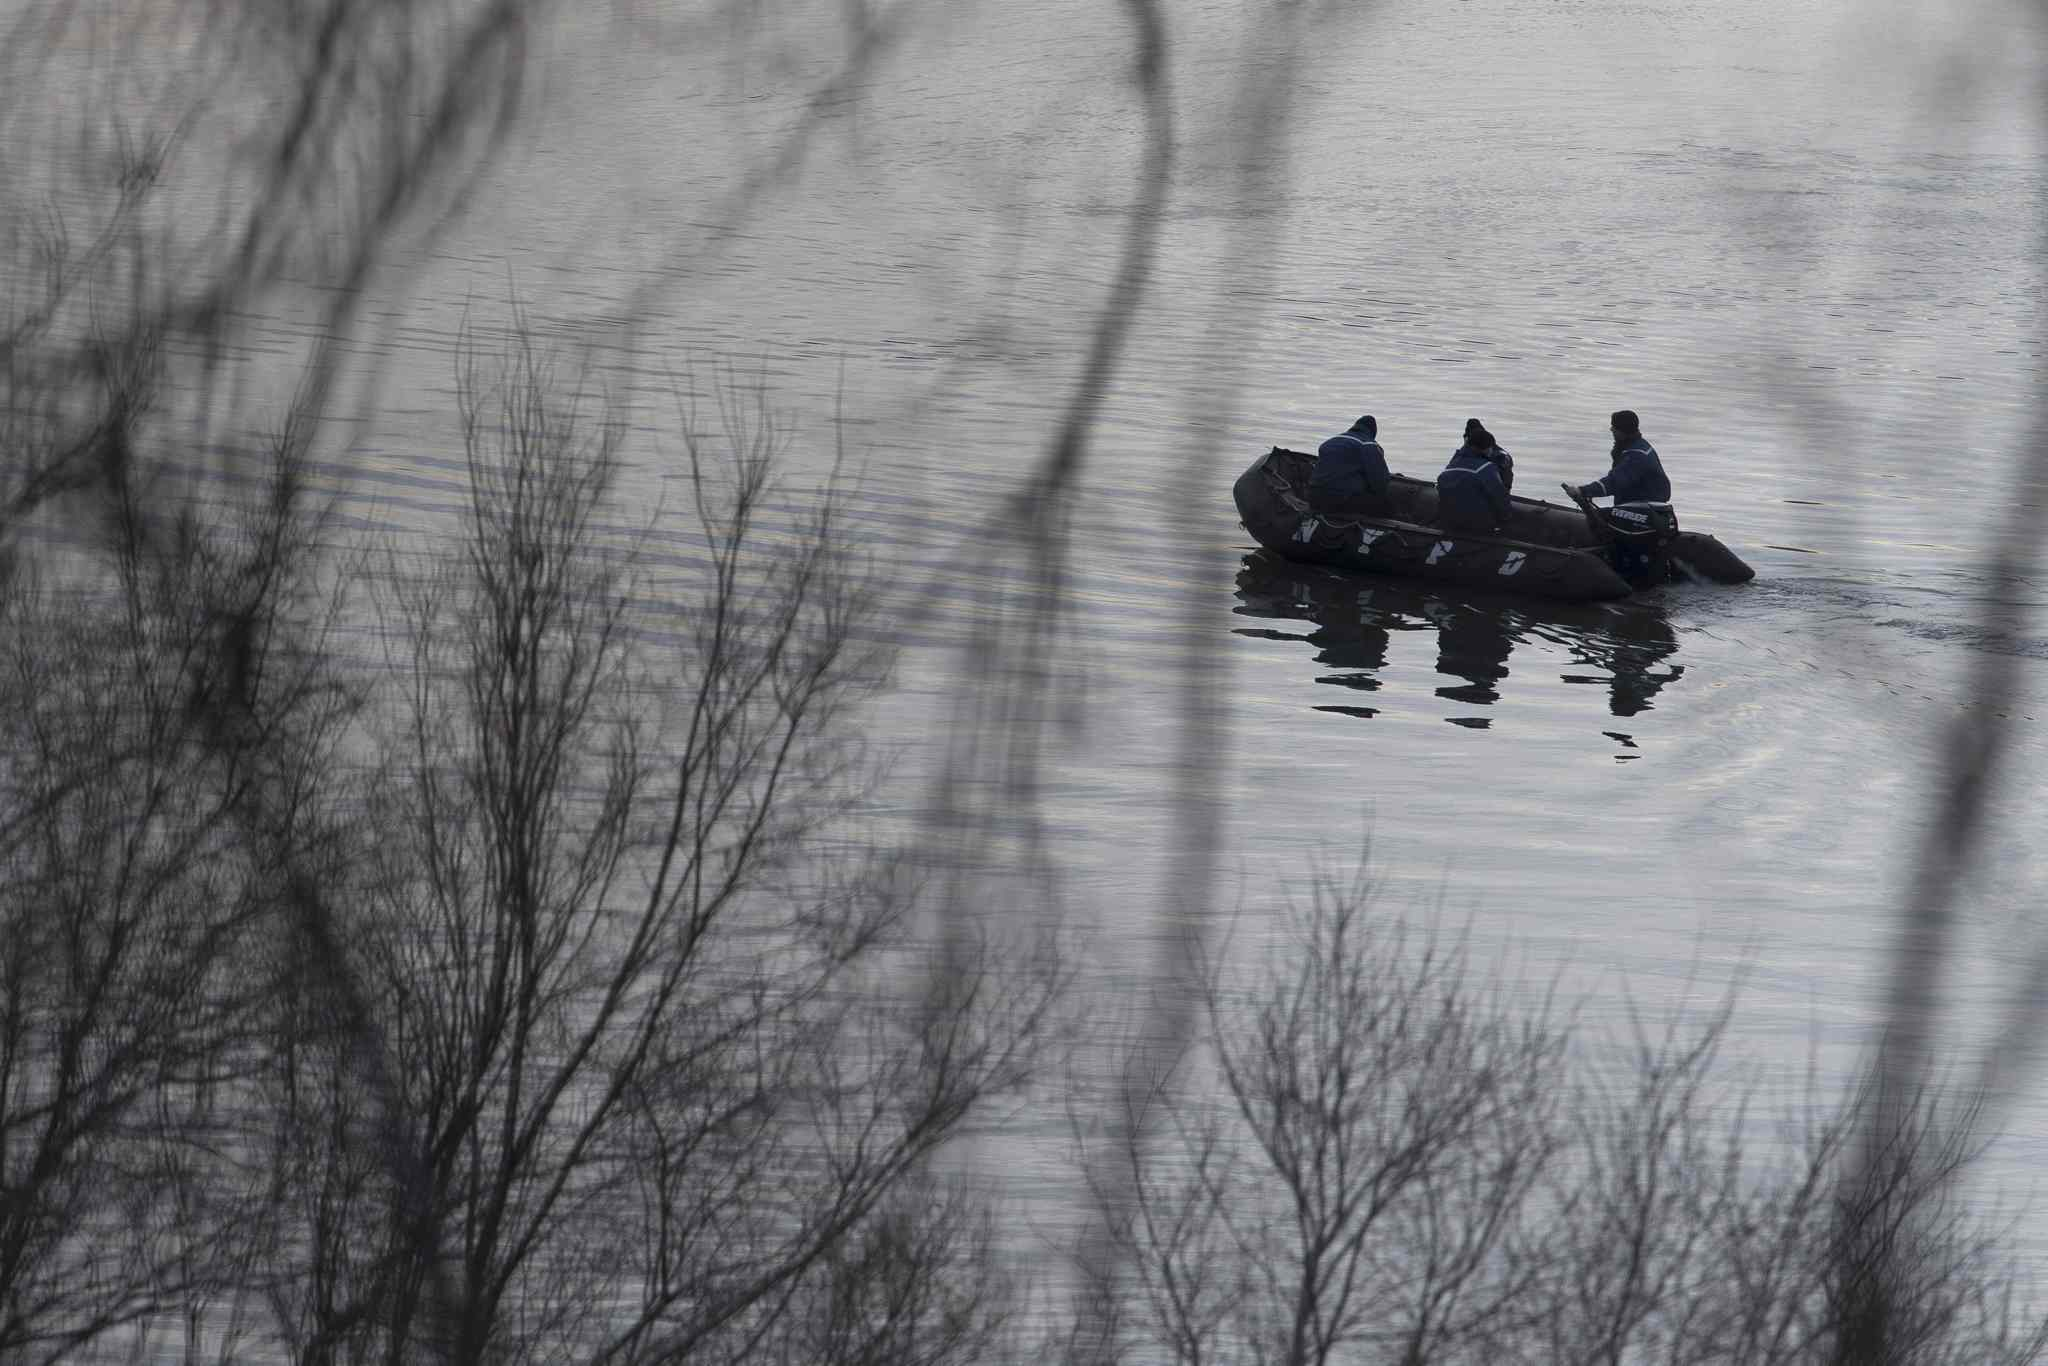 Emergency personnel patrol the waters near the scene the train derailment.